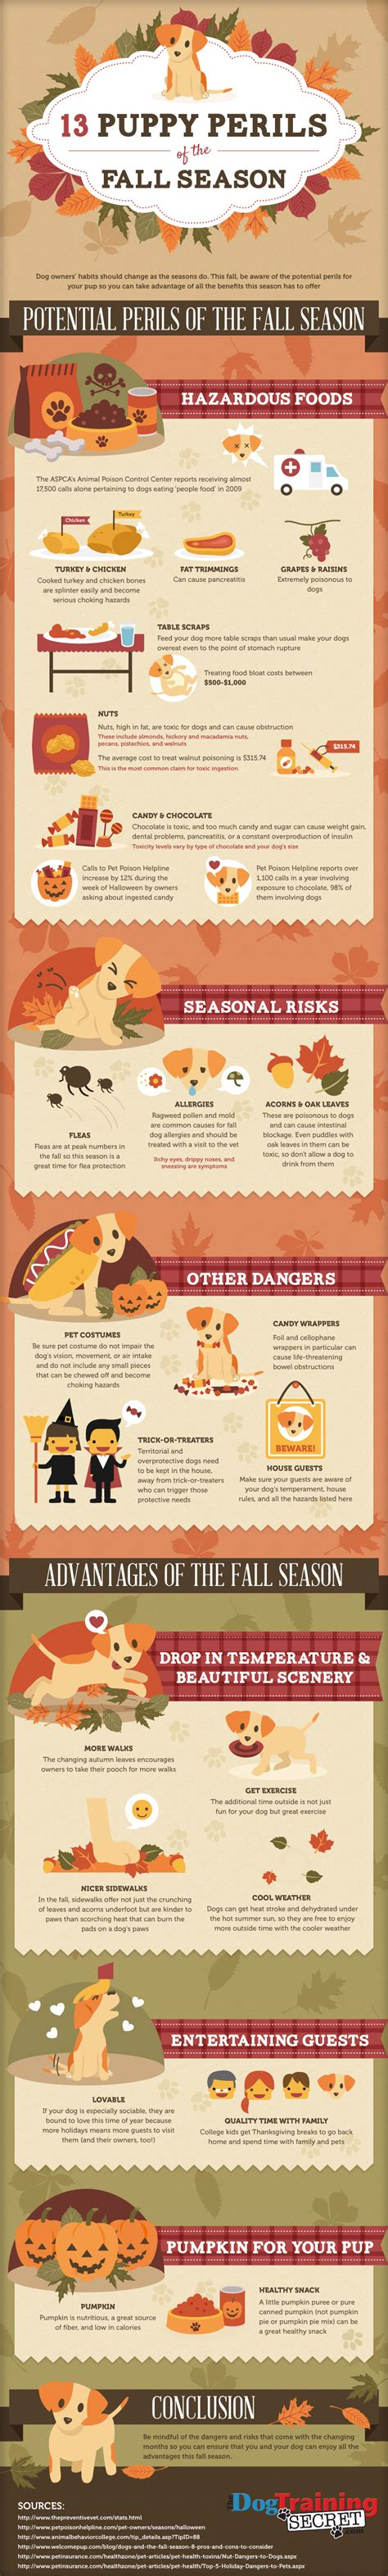 puppy season 13 puppy perils of the fall season infographic thedogtrainingsecret